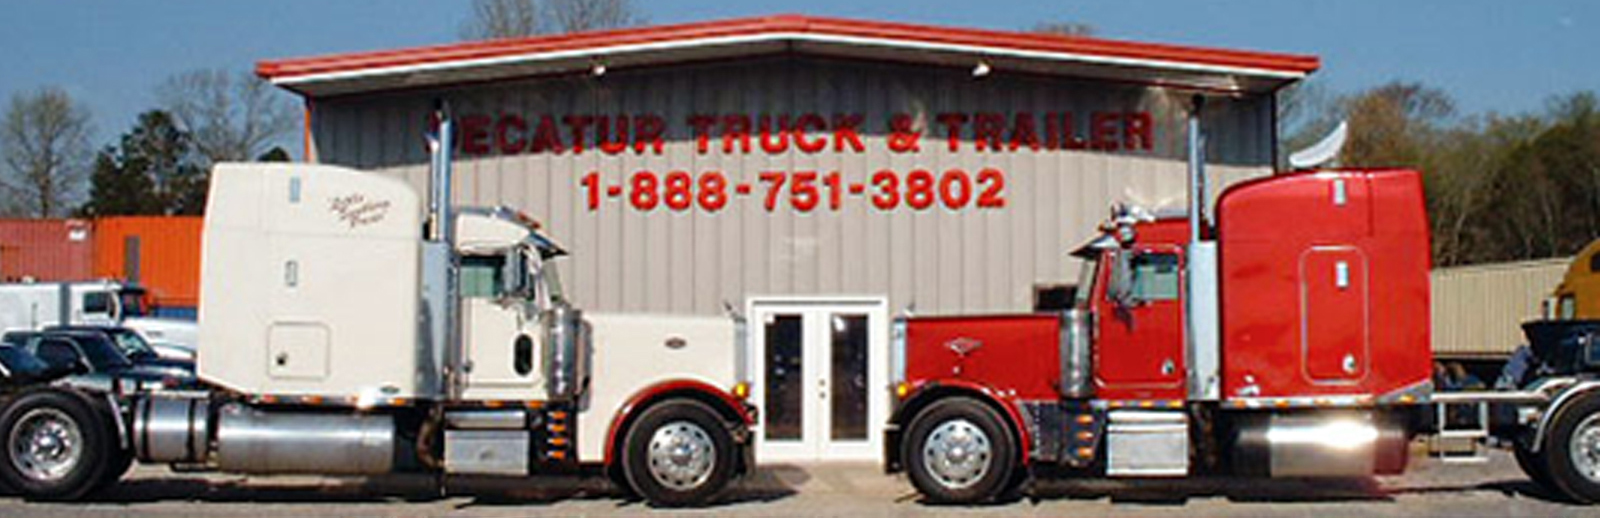 Decatur Truck and Trailer Location Image